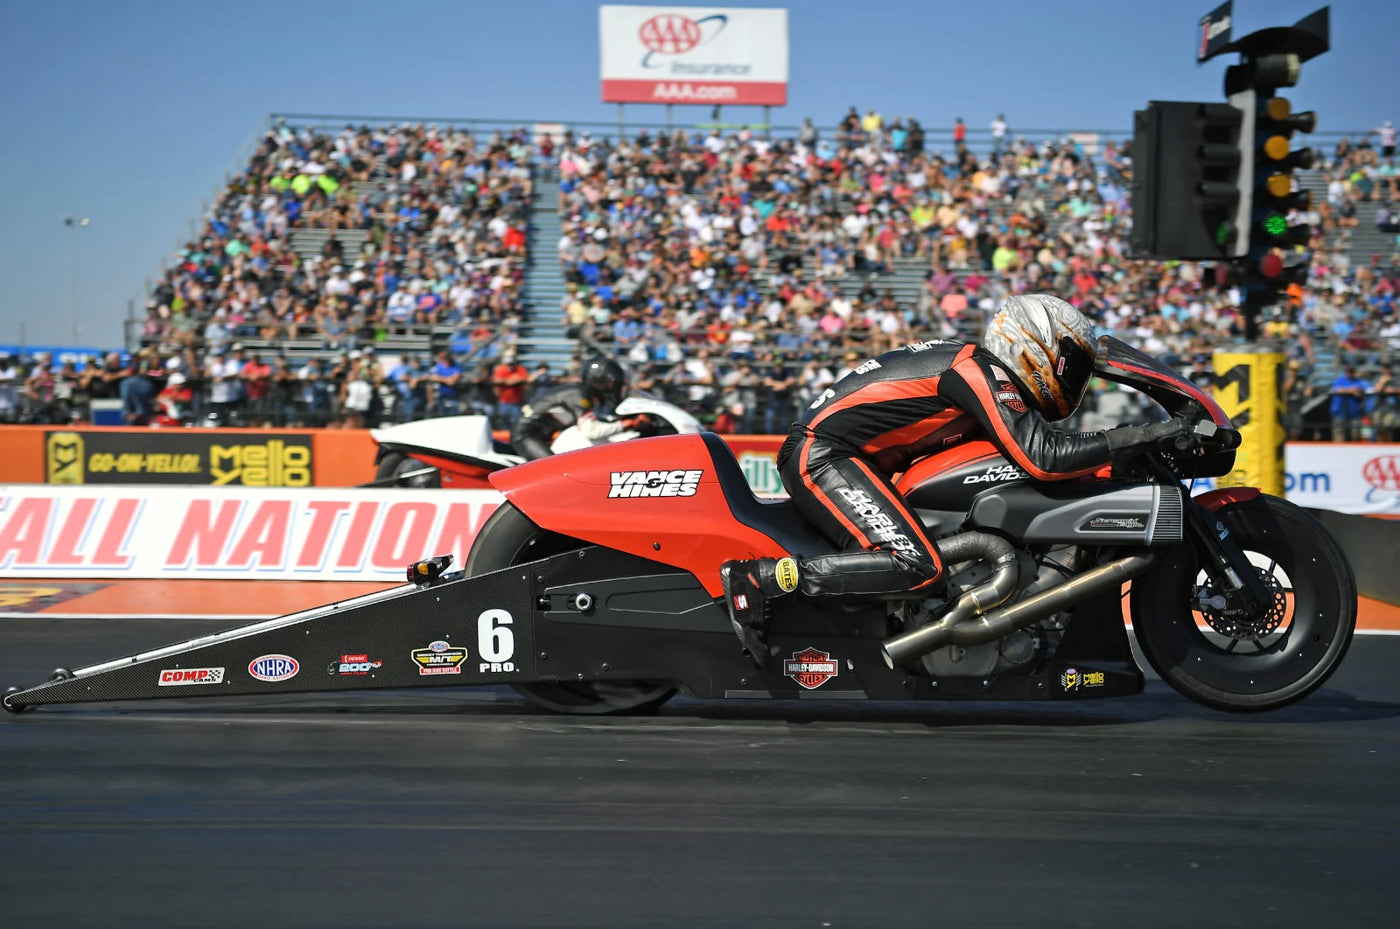 A Six-Time Drag Racing Champion Spills The Secret To Going Fast On Two Wheels